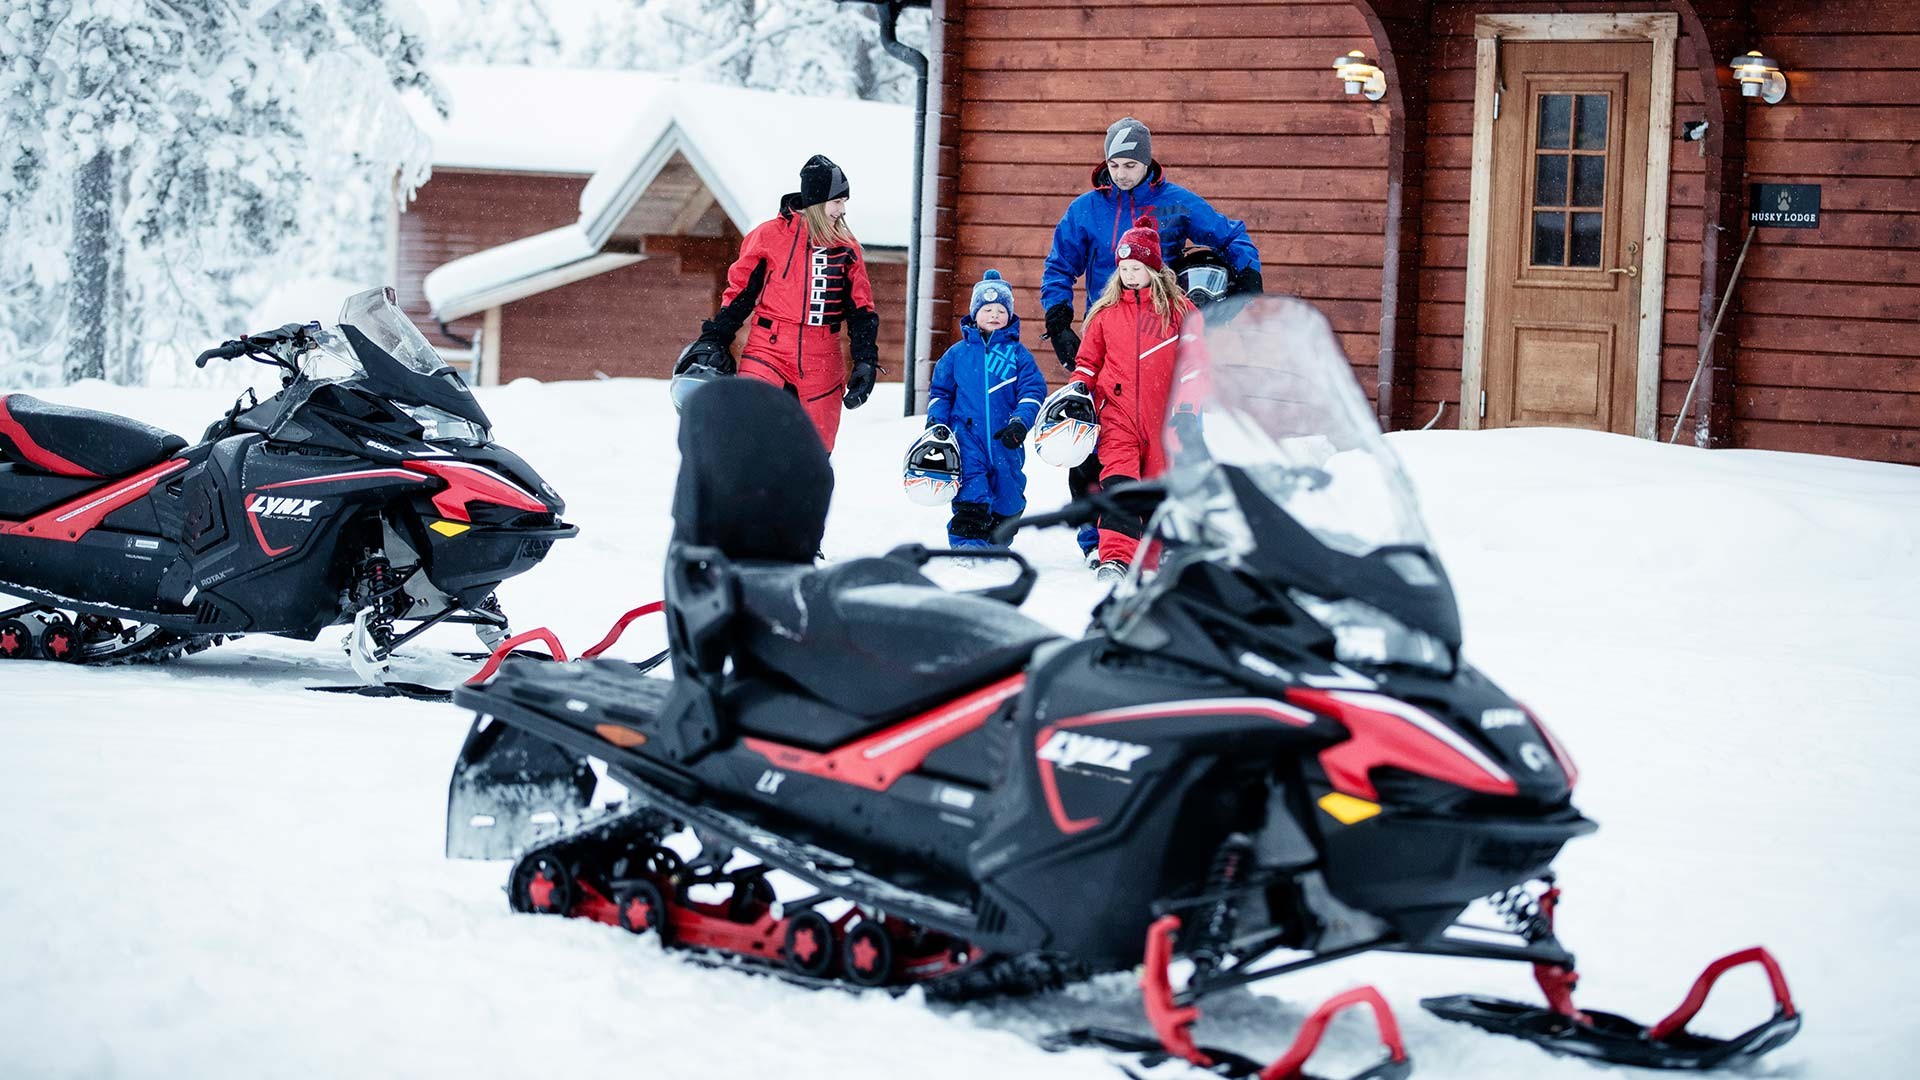 Family going riding with Lynx Adventure snowmobiles